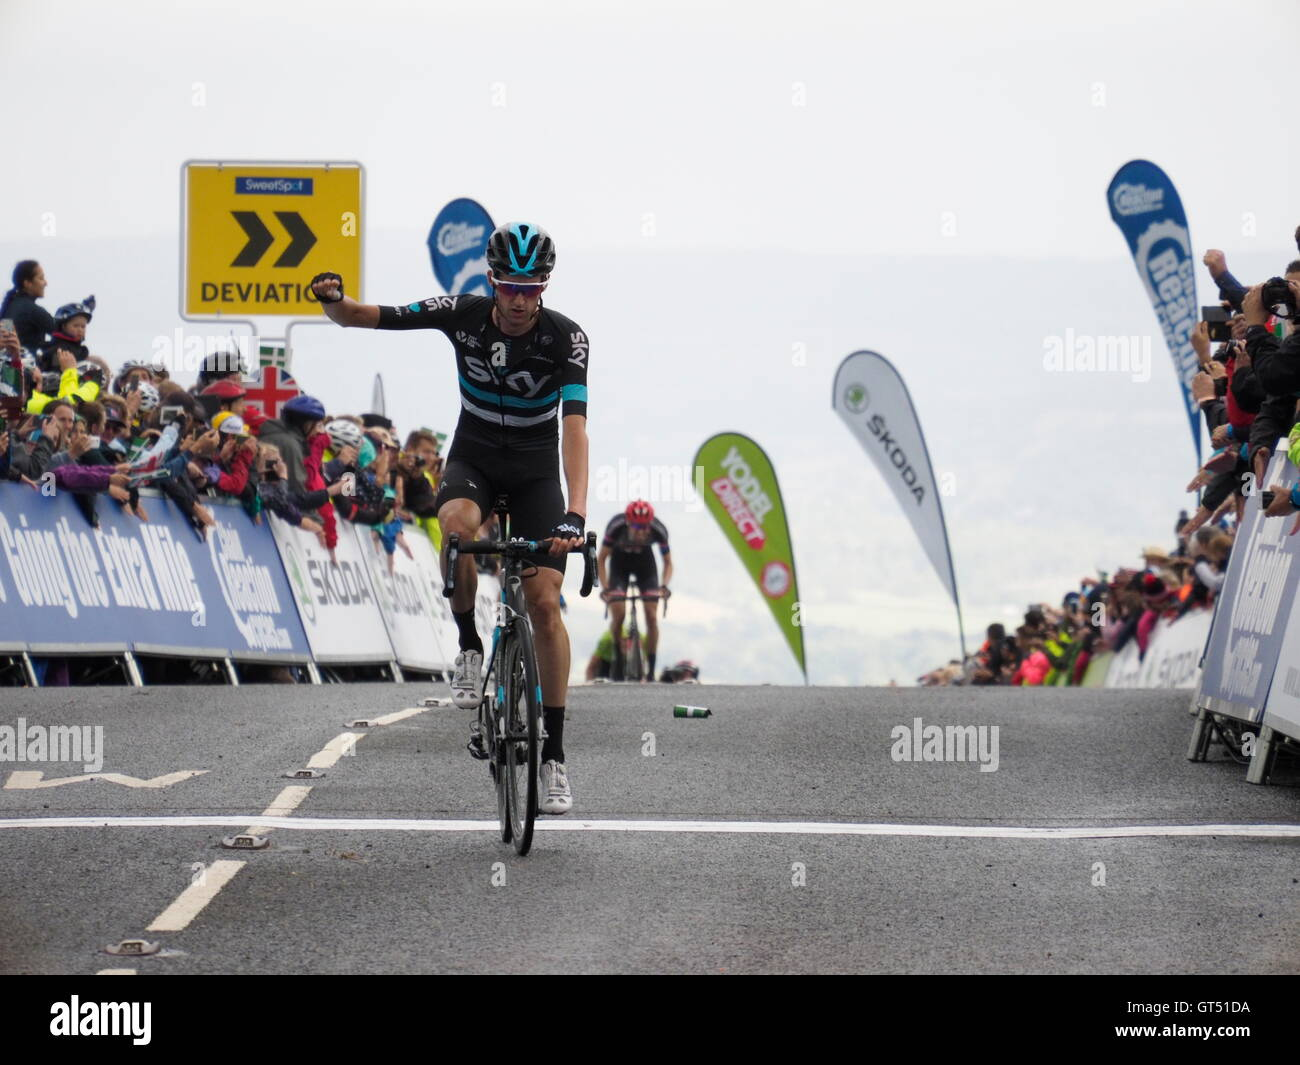 Haytor Dartmoor, UK. 9th Sep, 2016. Finish of Sidmouth to Haytor stage of the Tour of Britain Wouter Poels Team Stock Photo